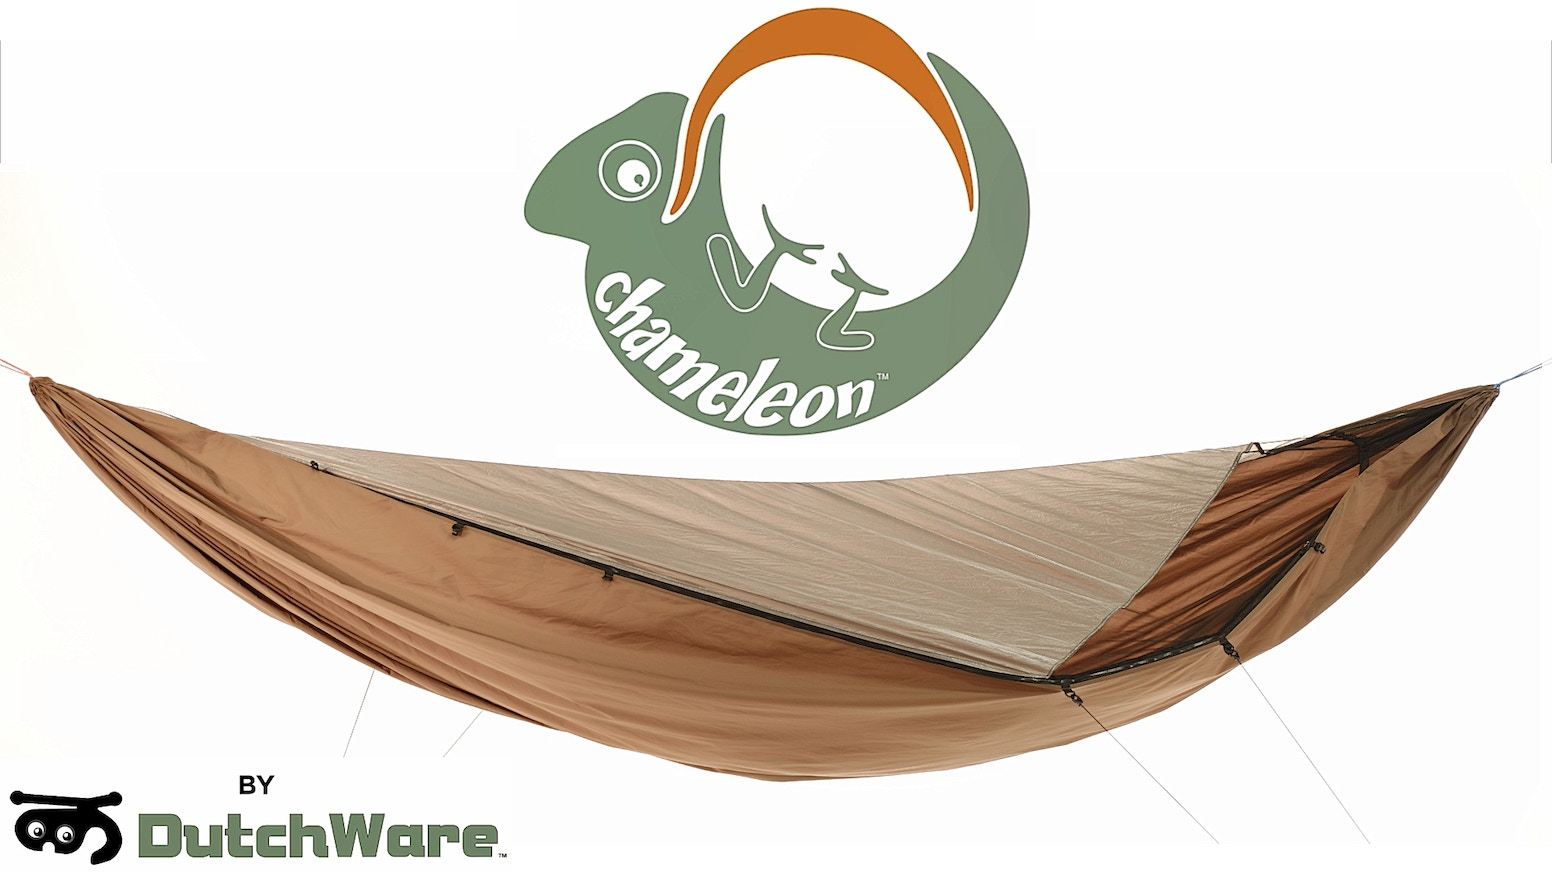 Developed by DutchWare to create a versatile and modular lightweight hammock that adapts to its environment.